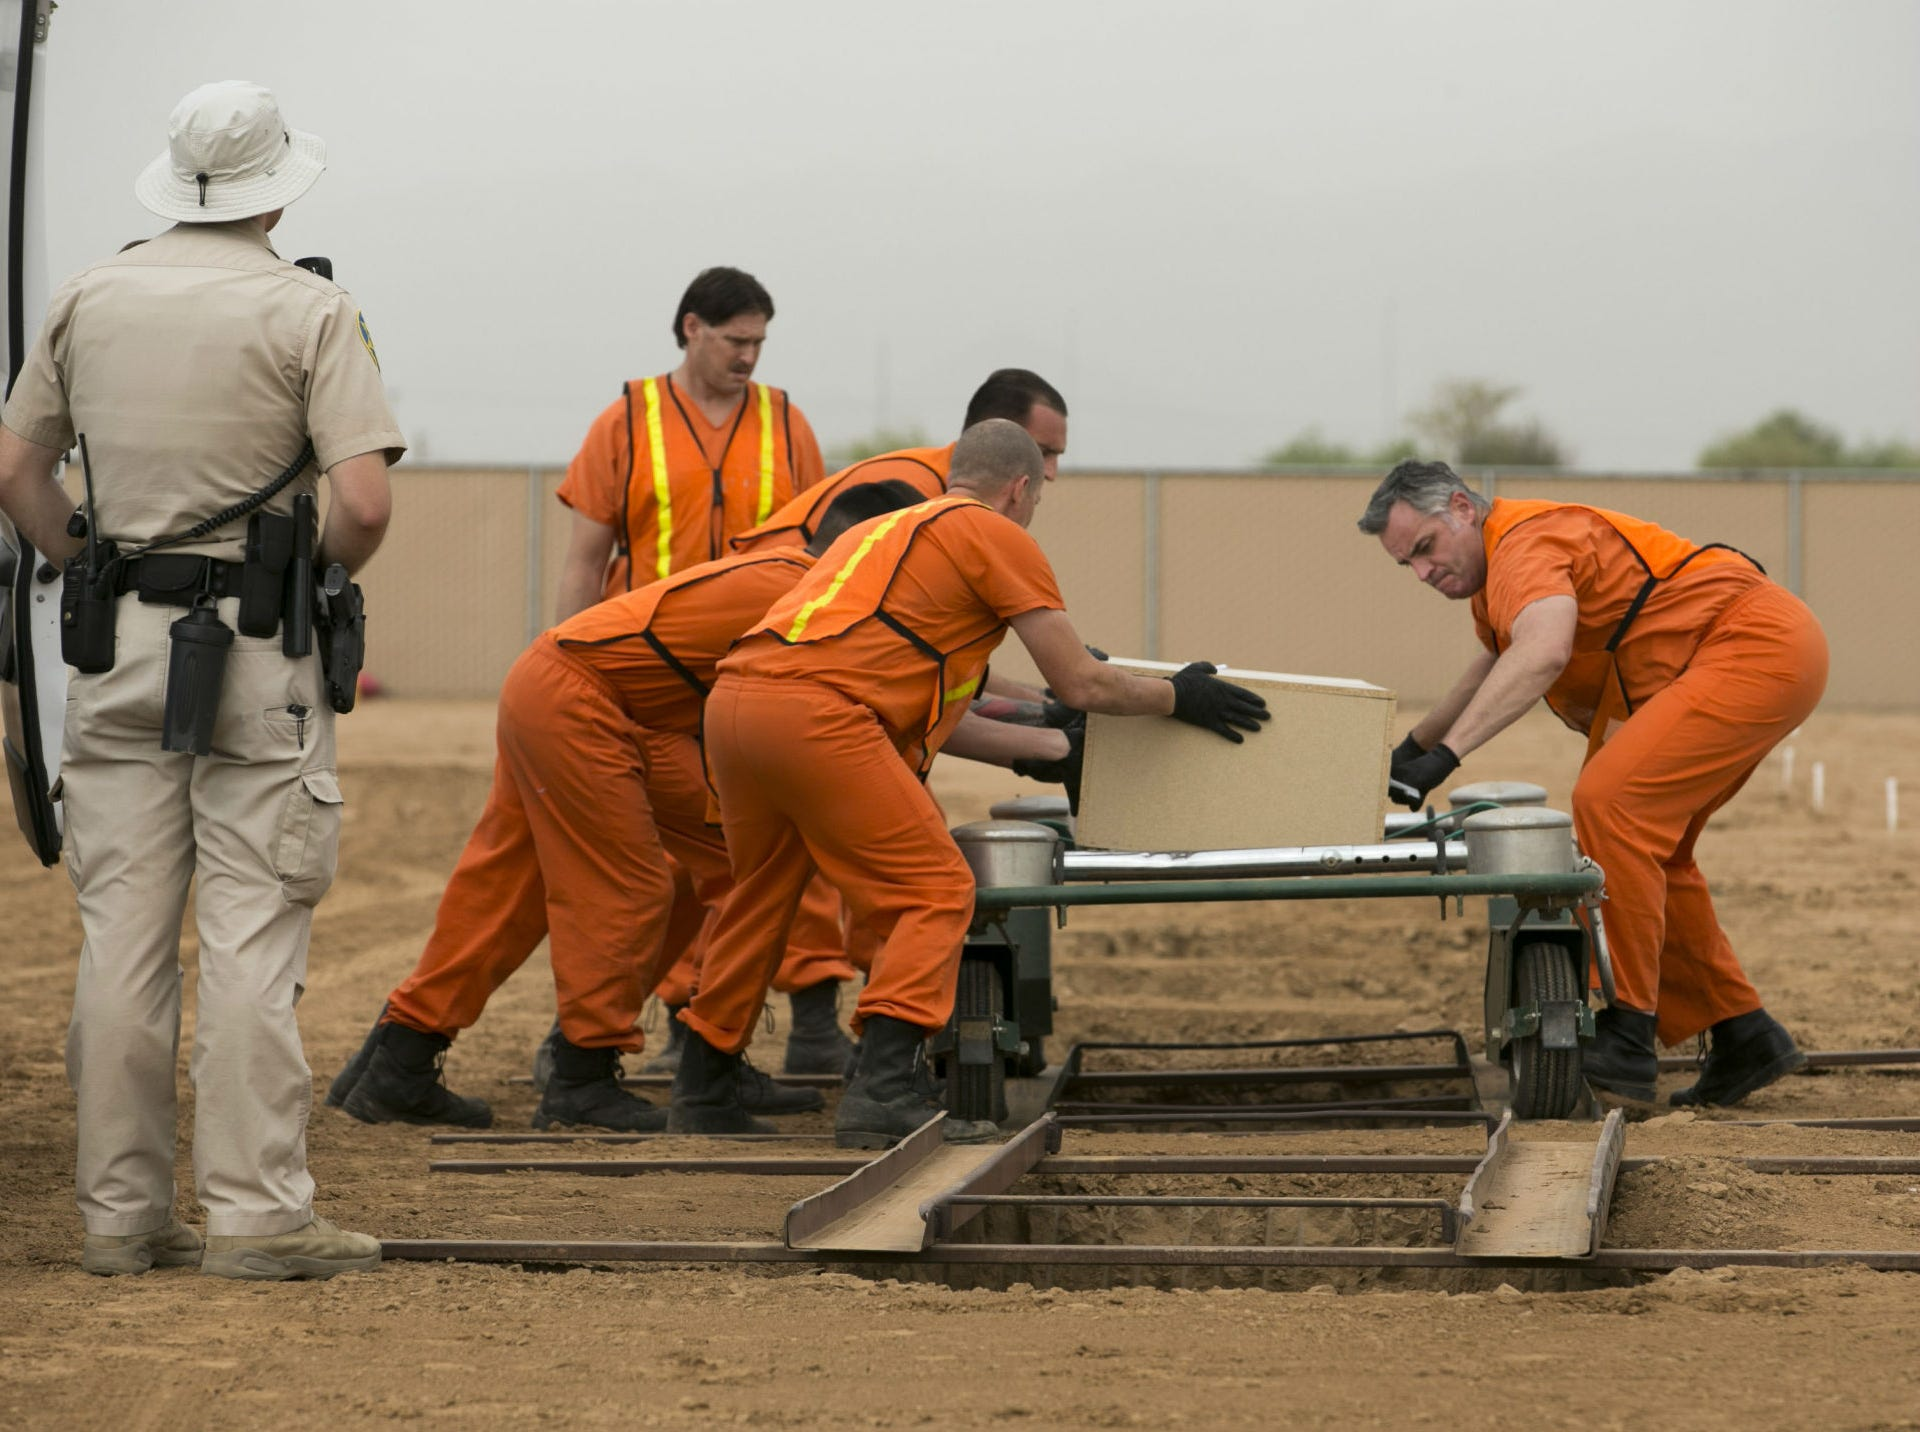 Maricopa County jail inmates assist with the burial of an indigent individual as a Maricopa County corrections officer keeps a watchful eye at the White Tanks Cemetery in Litchfield Park on Aug. 9, 2018.